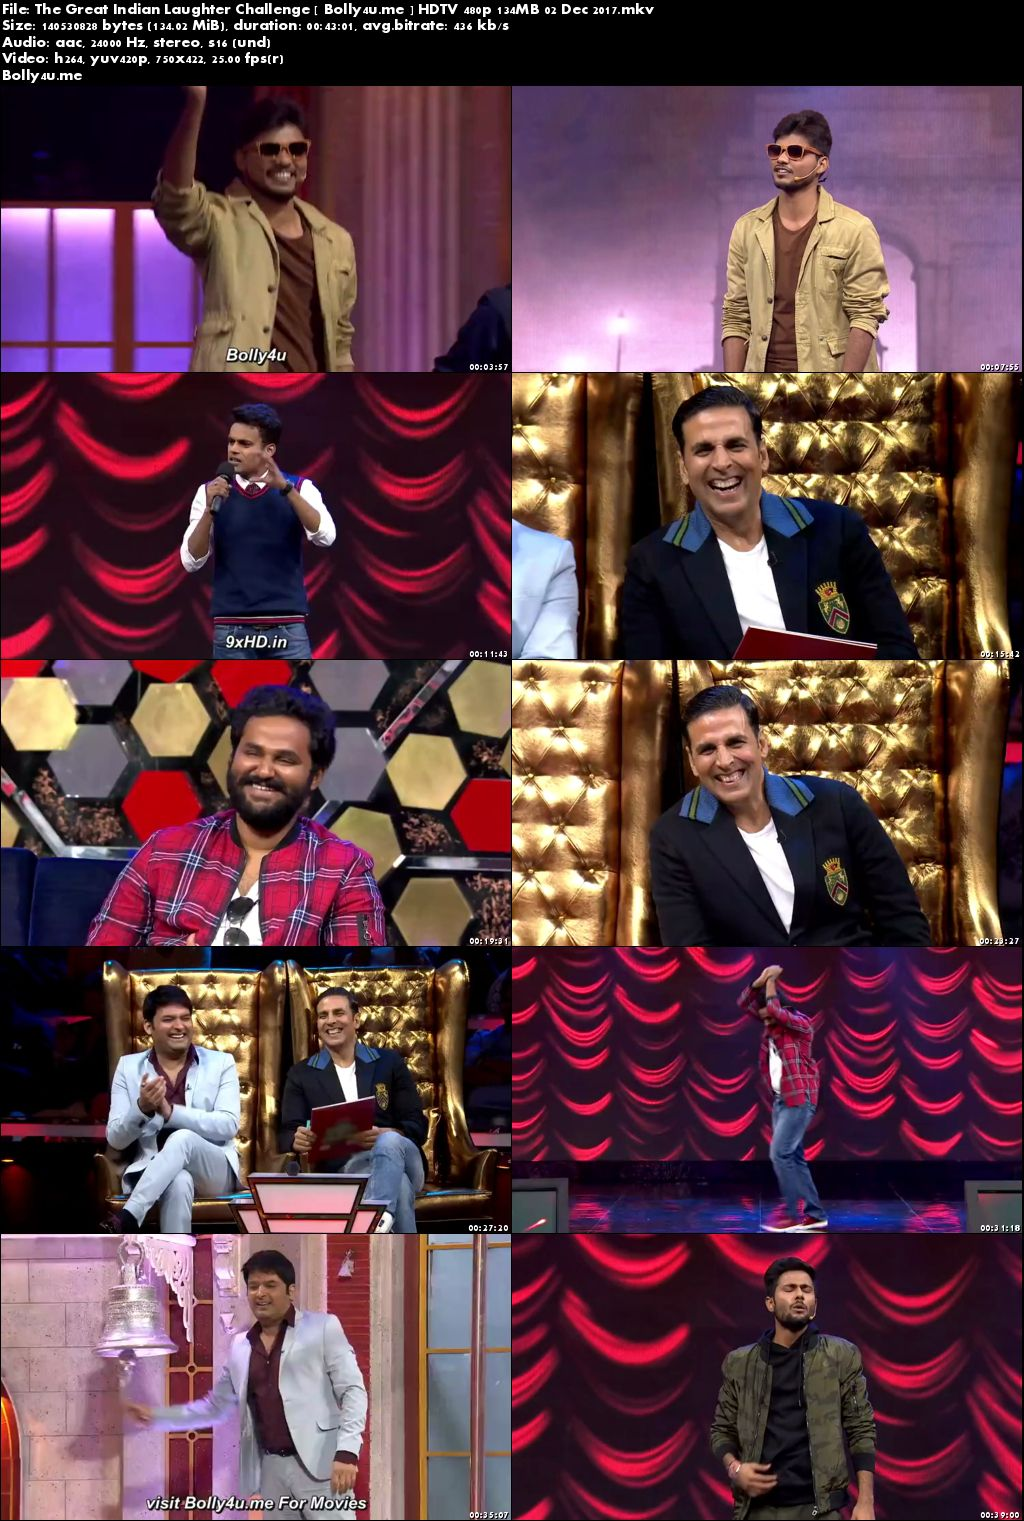 The Great Indian Laughter Challenge HDTV 480p 140MB 02 Dec 2017 Download